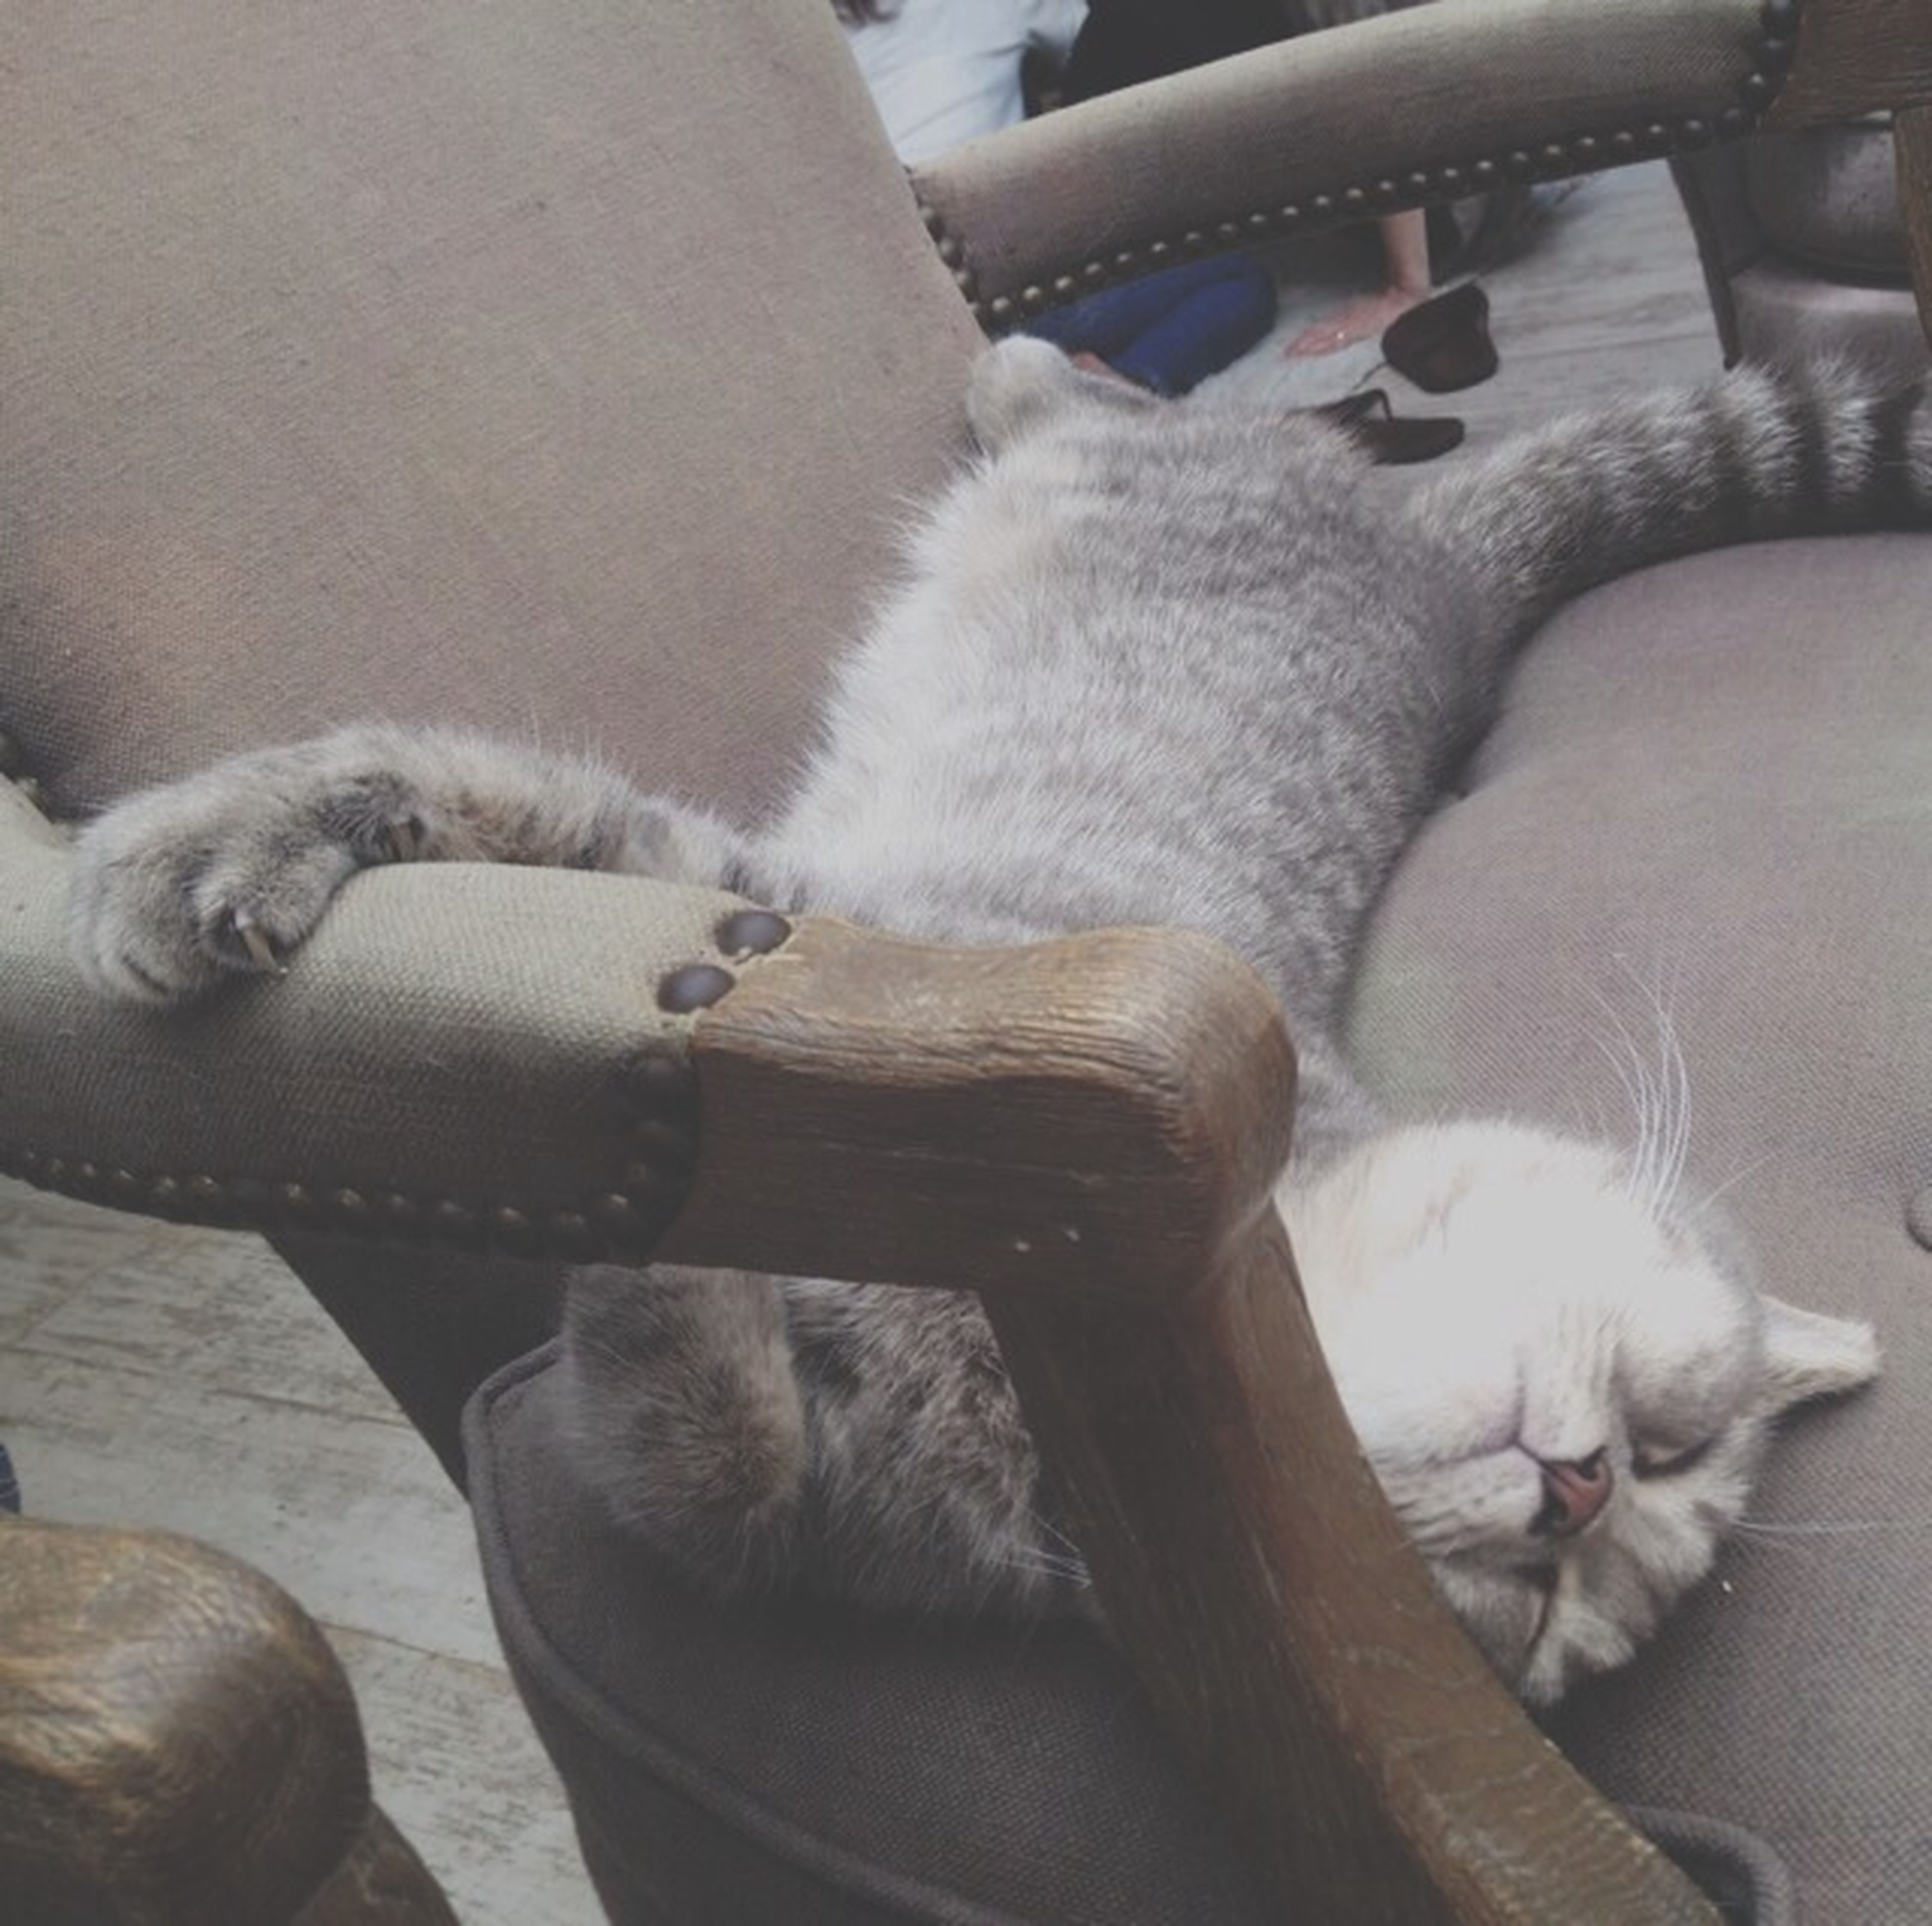 animal themes, indoors, domestic animals, one animal, pets, domestic cat, mammal, relaxation, cat, resting, sleeping, lying down, high angle view, feline, home interior, close-up, toy, sitting, sofa, no people